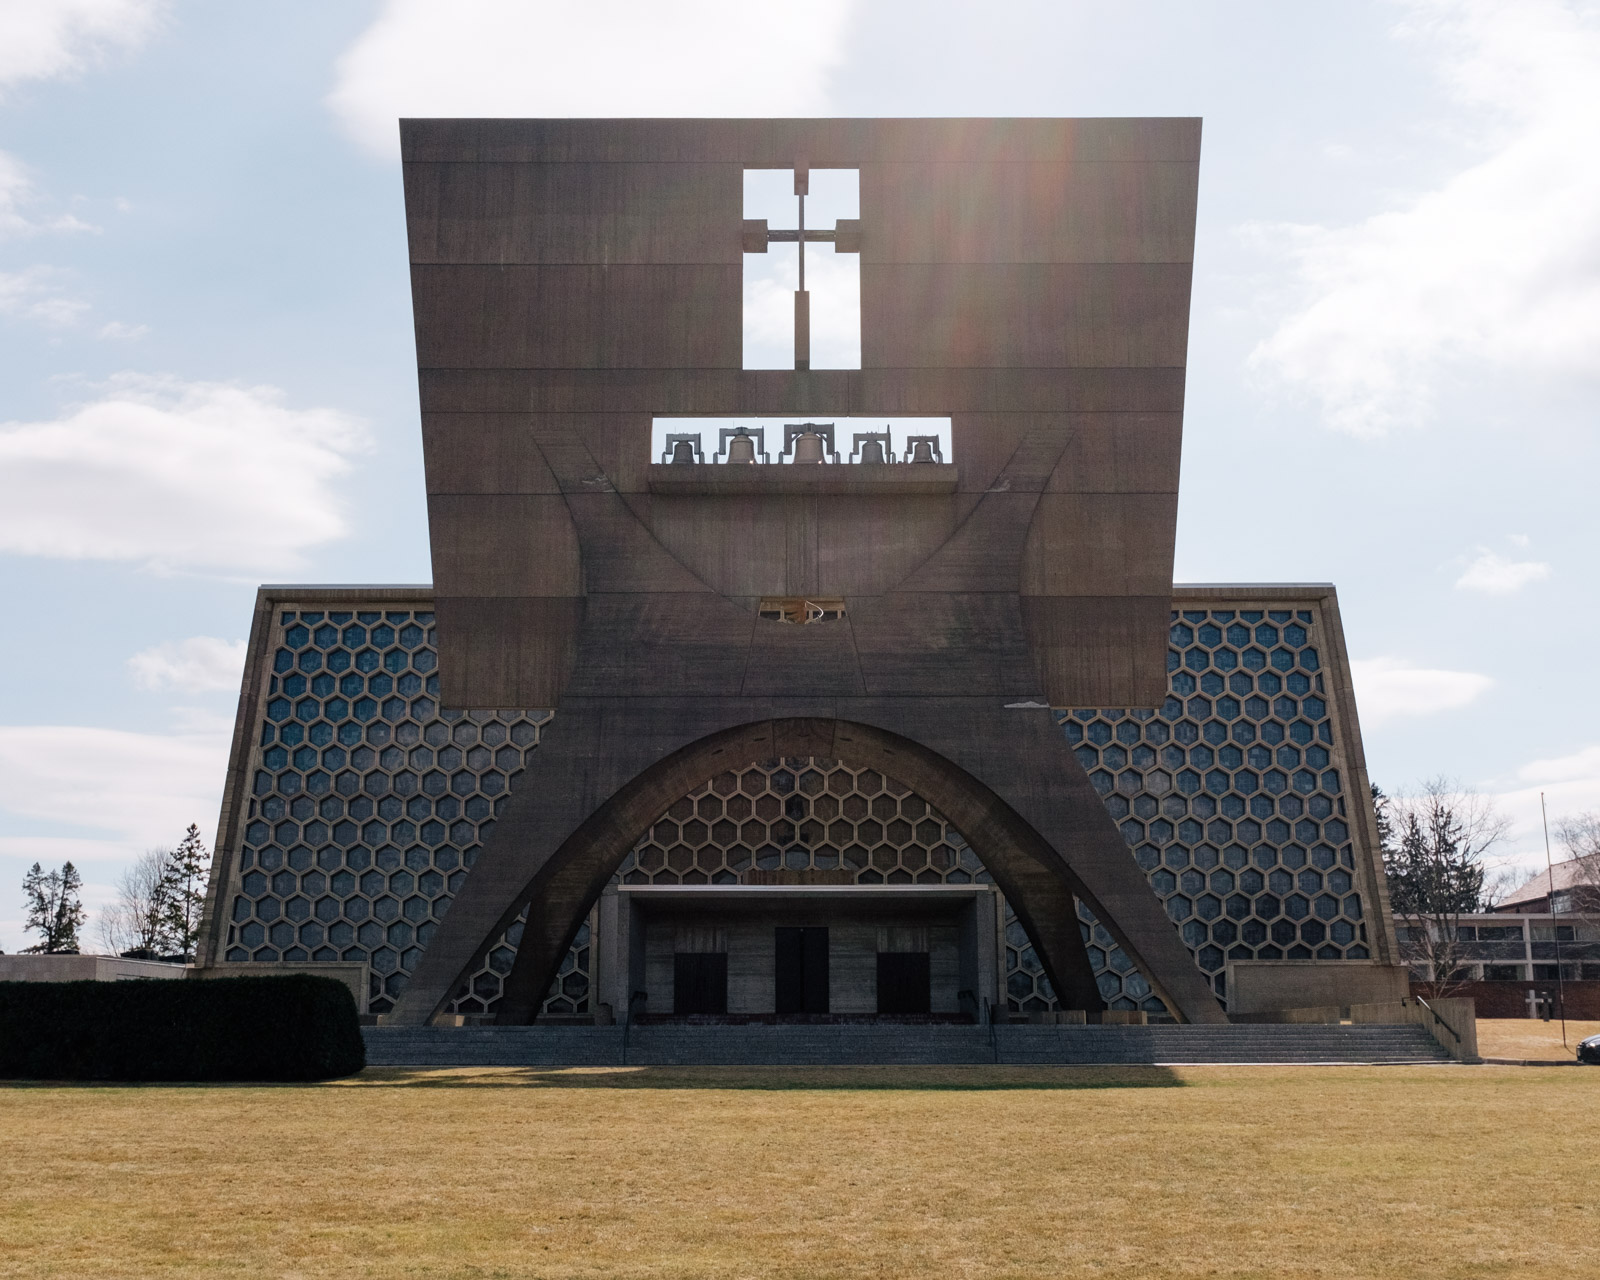 St. John's Abbey Church, Collegeville Township, Minnesota - 1961, Marcel Breuer